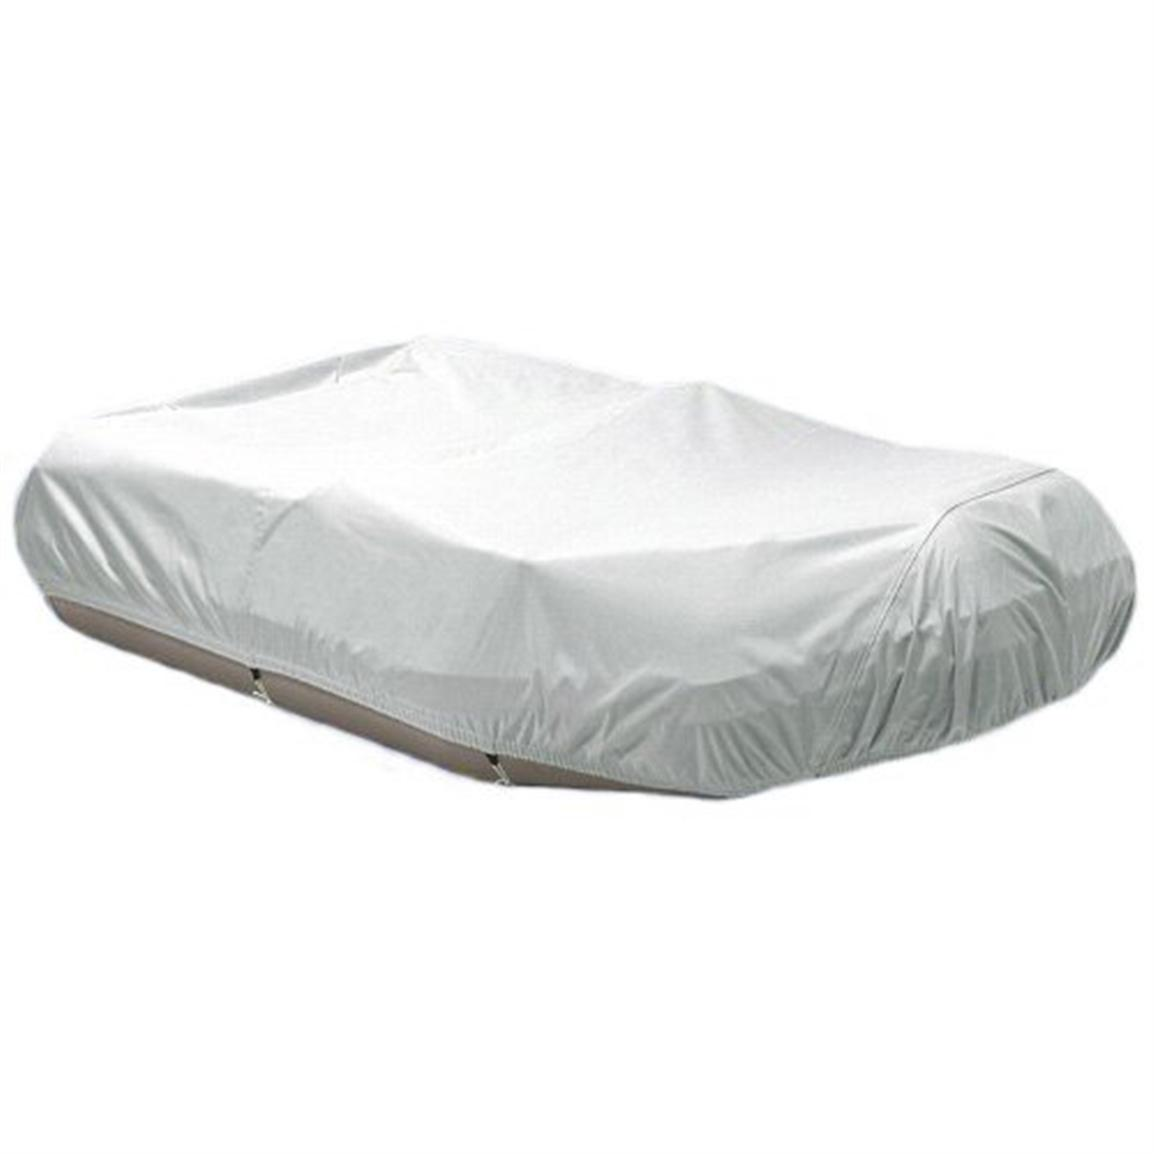 Dallas Mfg. Co. Inflatable Boat Cover